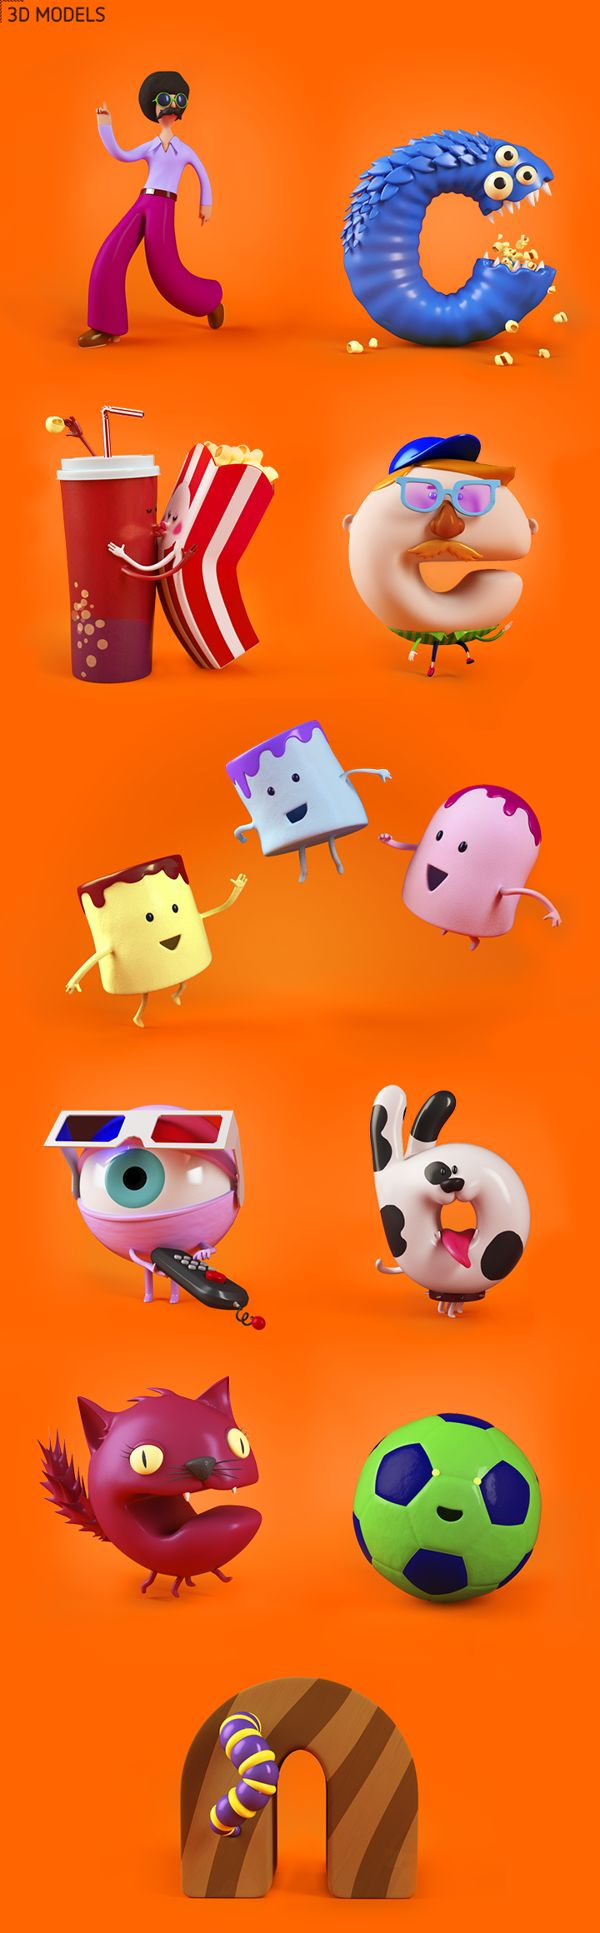 "Nickelodeon ""Popcorn"" Animation, Character Design, Motion Graphics. Curated by your friends at https://createamixer.com/"